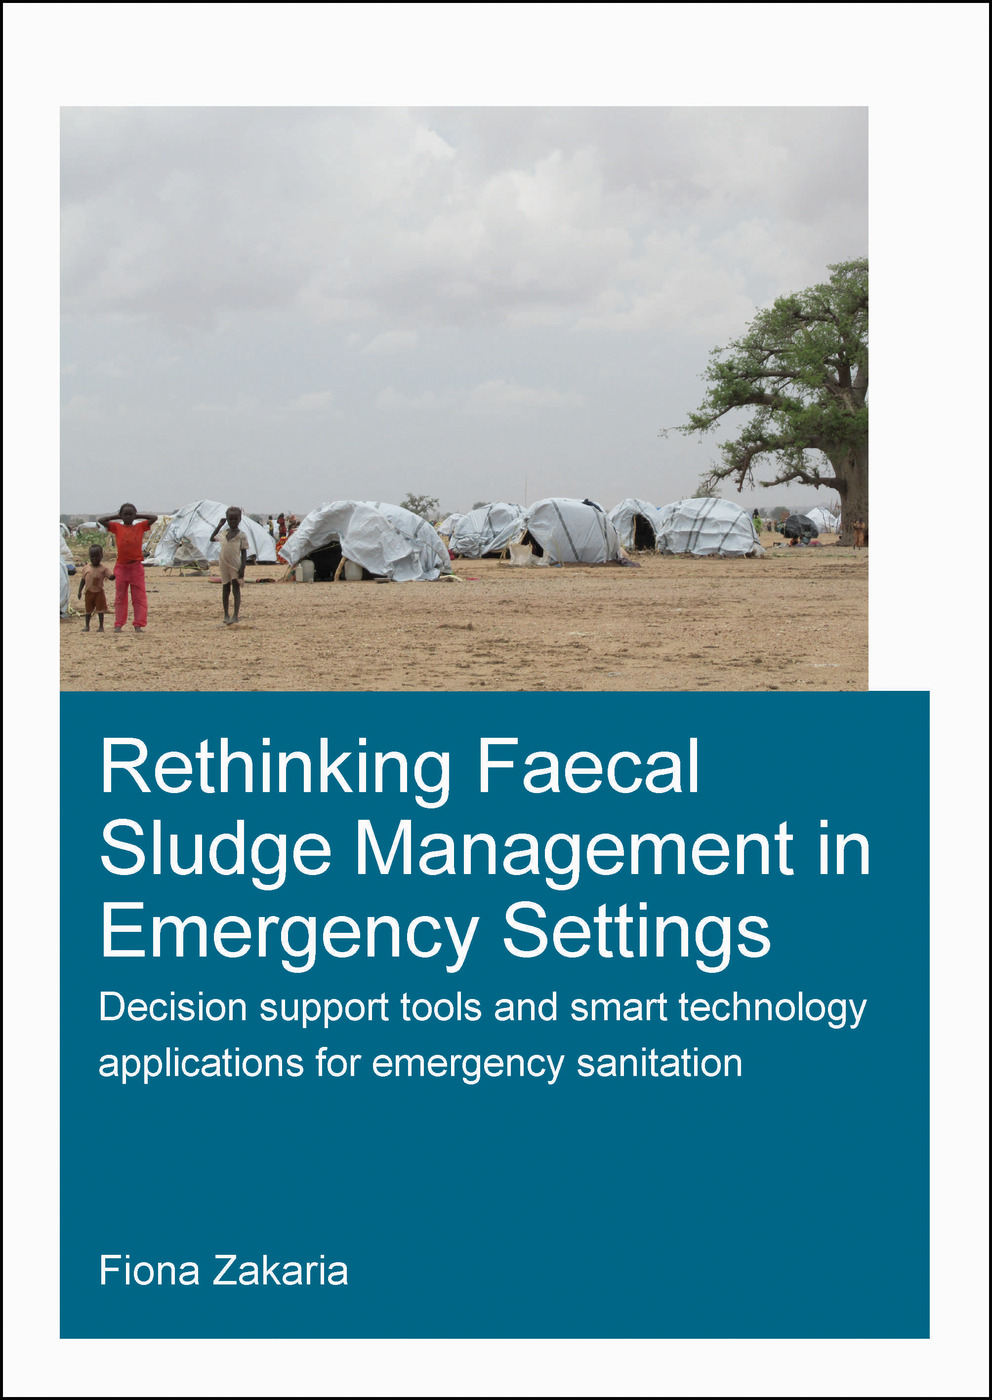 Rethinking Faecal Sludge Management in Emergency Settings